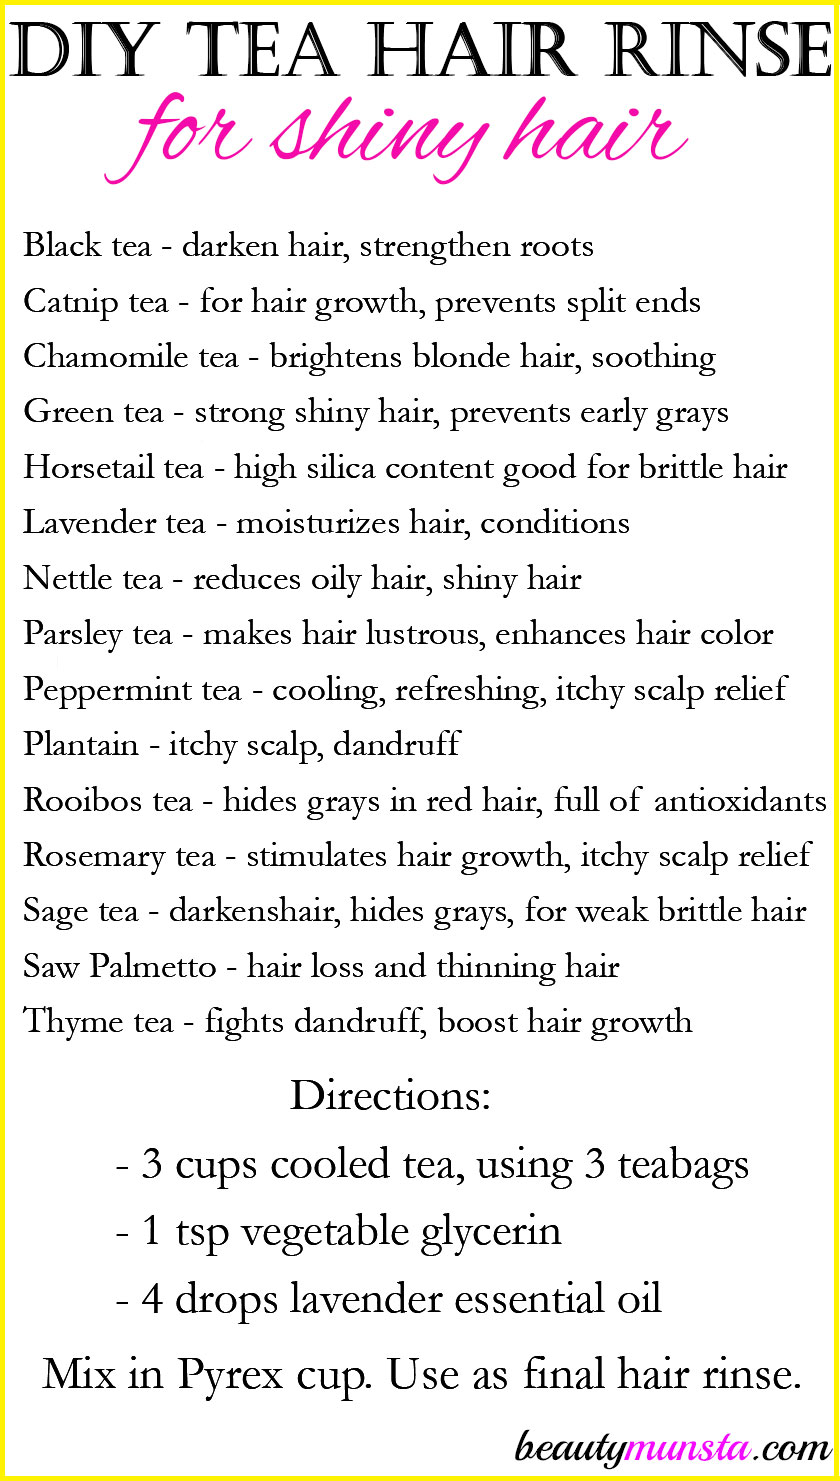 Want shiny hair? Use this simple DIY tea hair rinse that works!